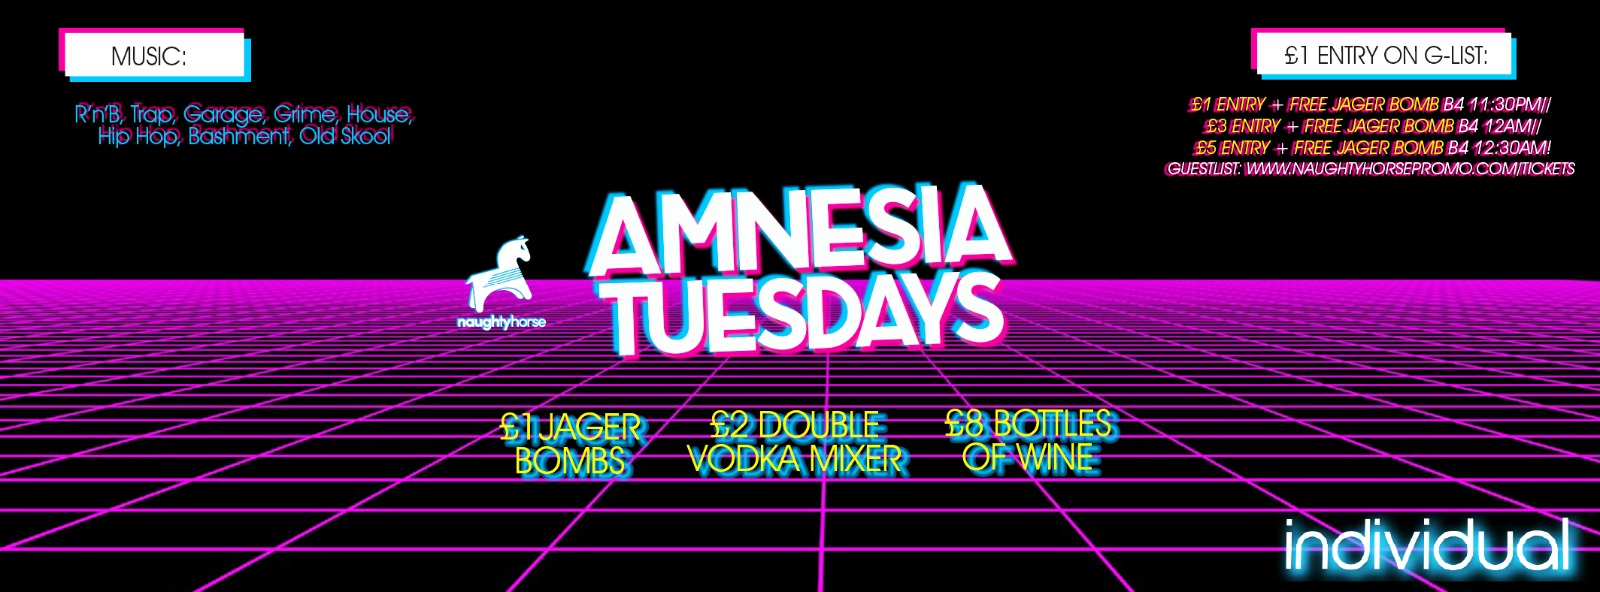 AMNESIA TUESDAYS: EASTER SESSIONS part 2 at Indi (Arcadian) – £1 Entry + FREE JAGERBOMB guestlist!